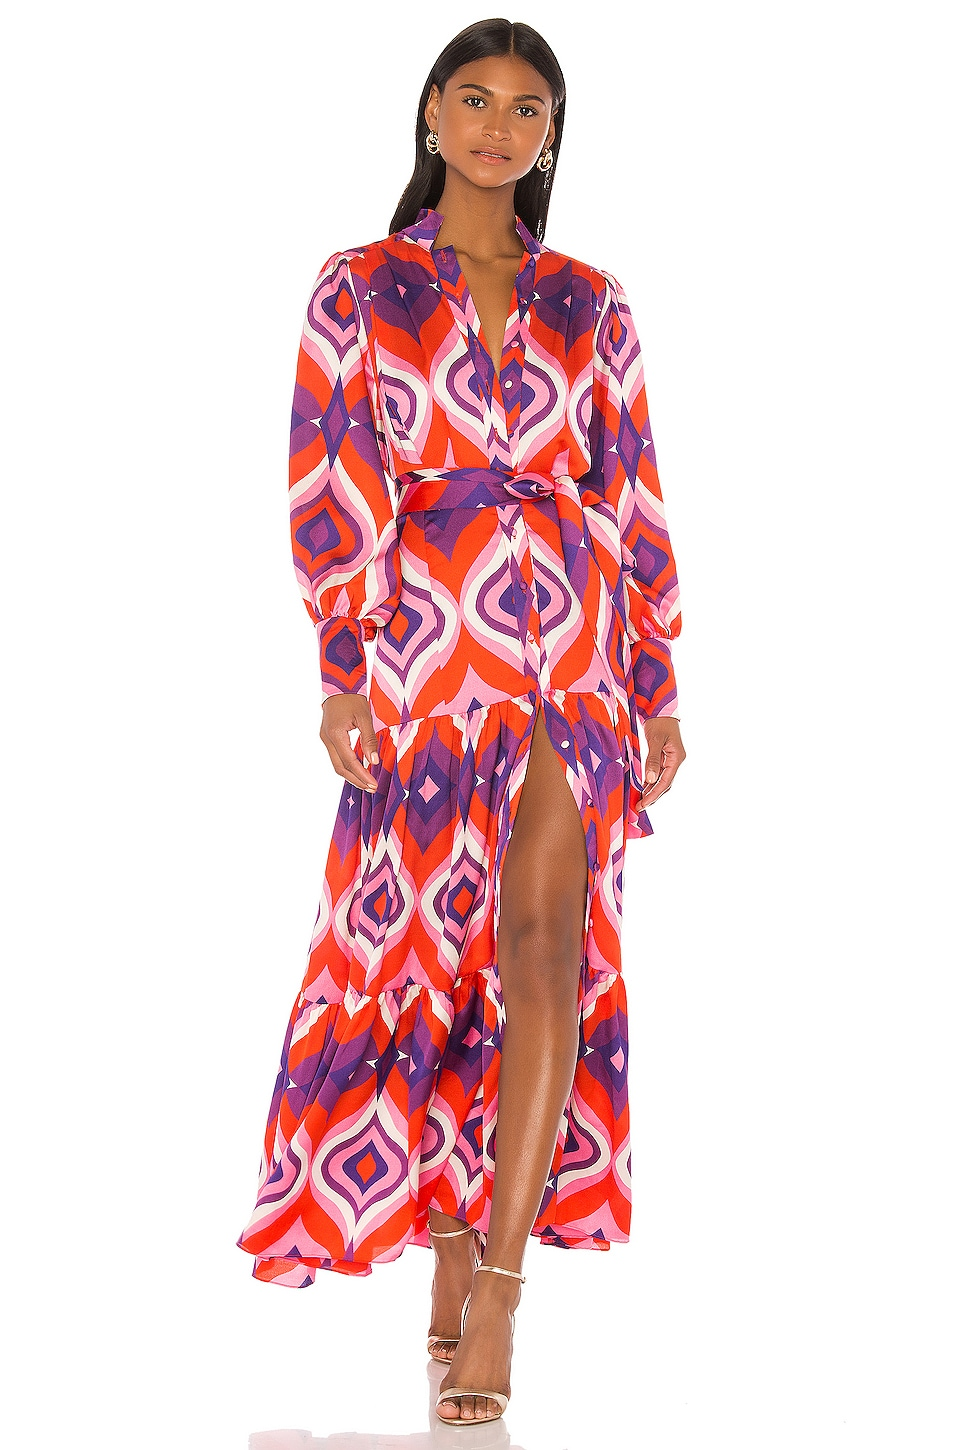 Alexis Dominica Dress in Kaleidoscope